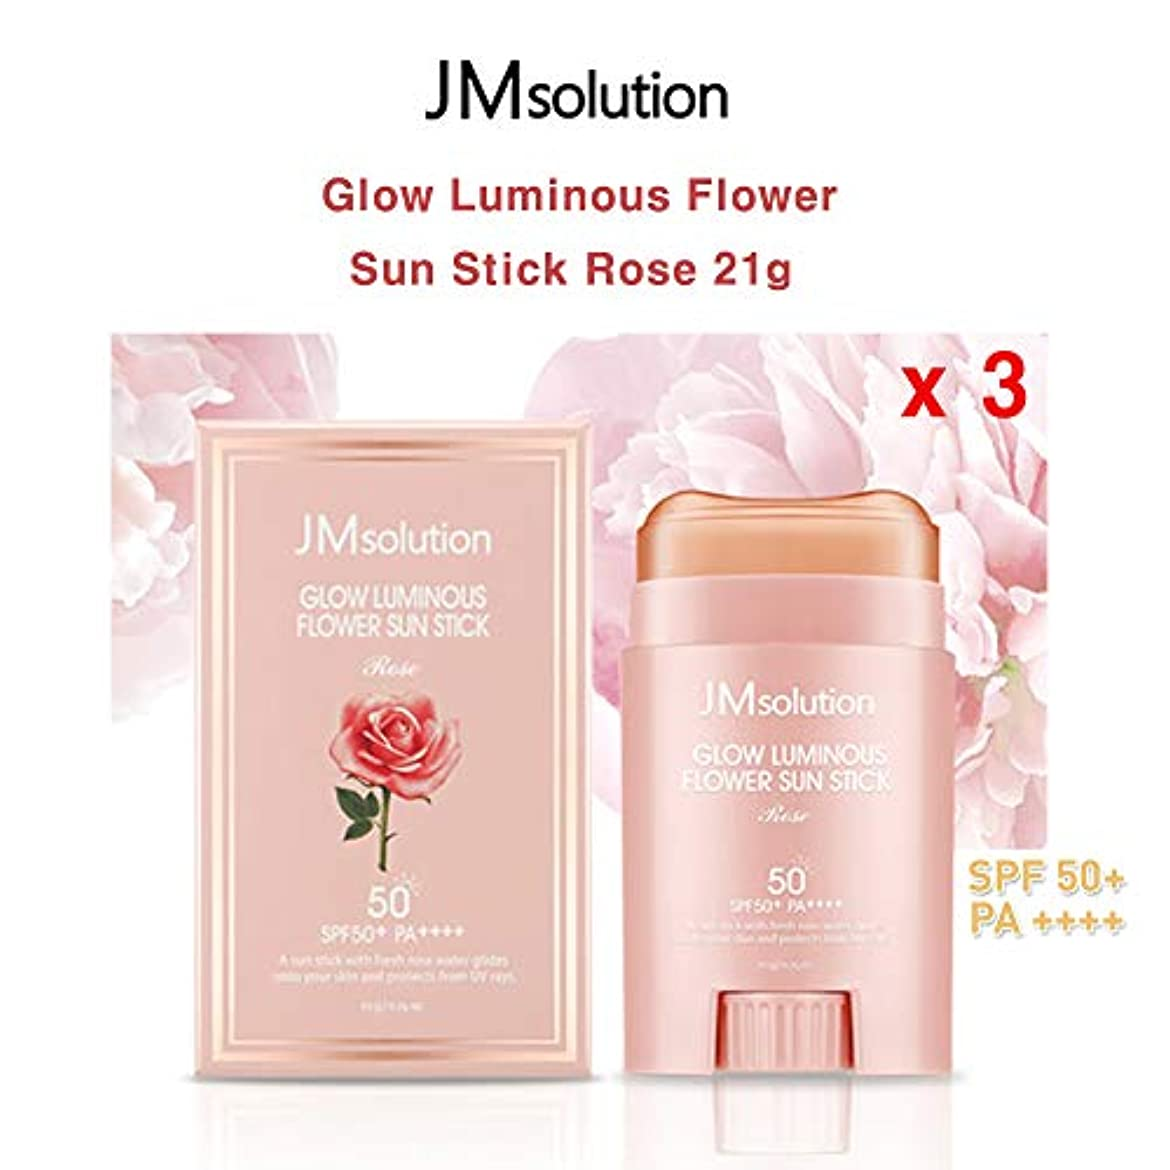 解凍する、雪解け、霜解けエレベーター晩餐JM Solution ★1+1+1★ Glow Luminous Flower Sun Stick Rose 21g (spf50 PA) 光る輝く花Sun Stick Rose